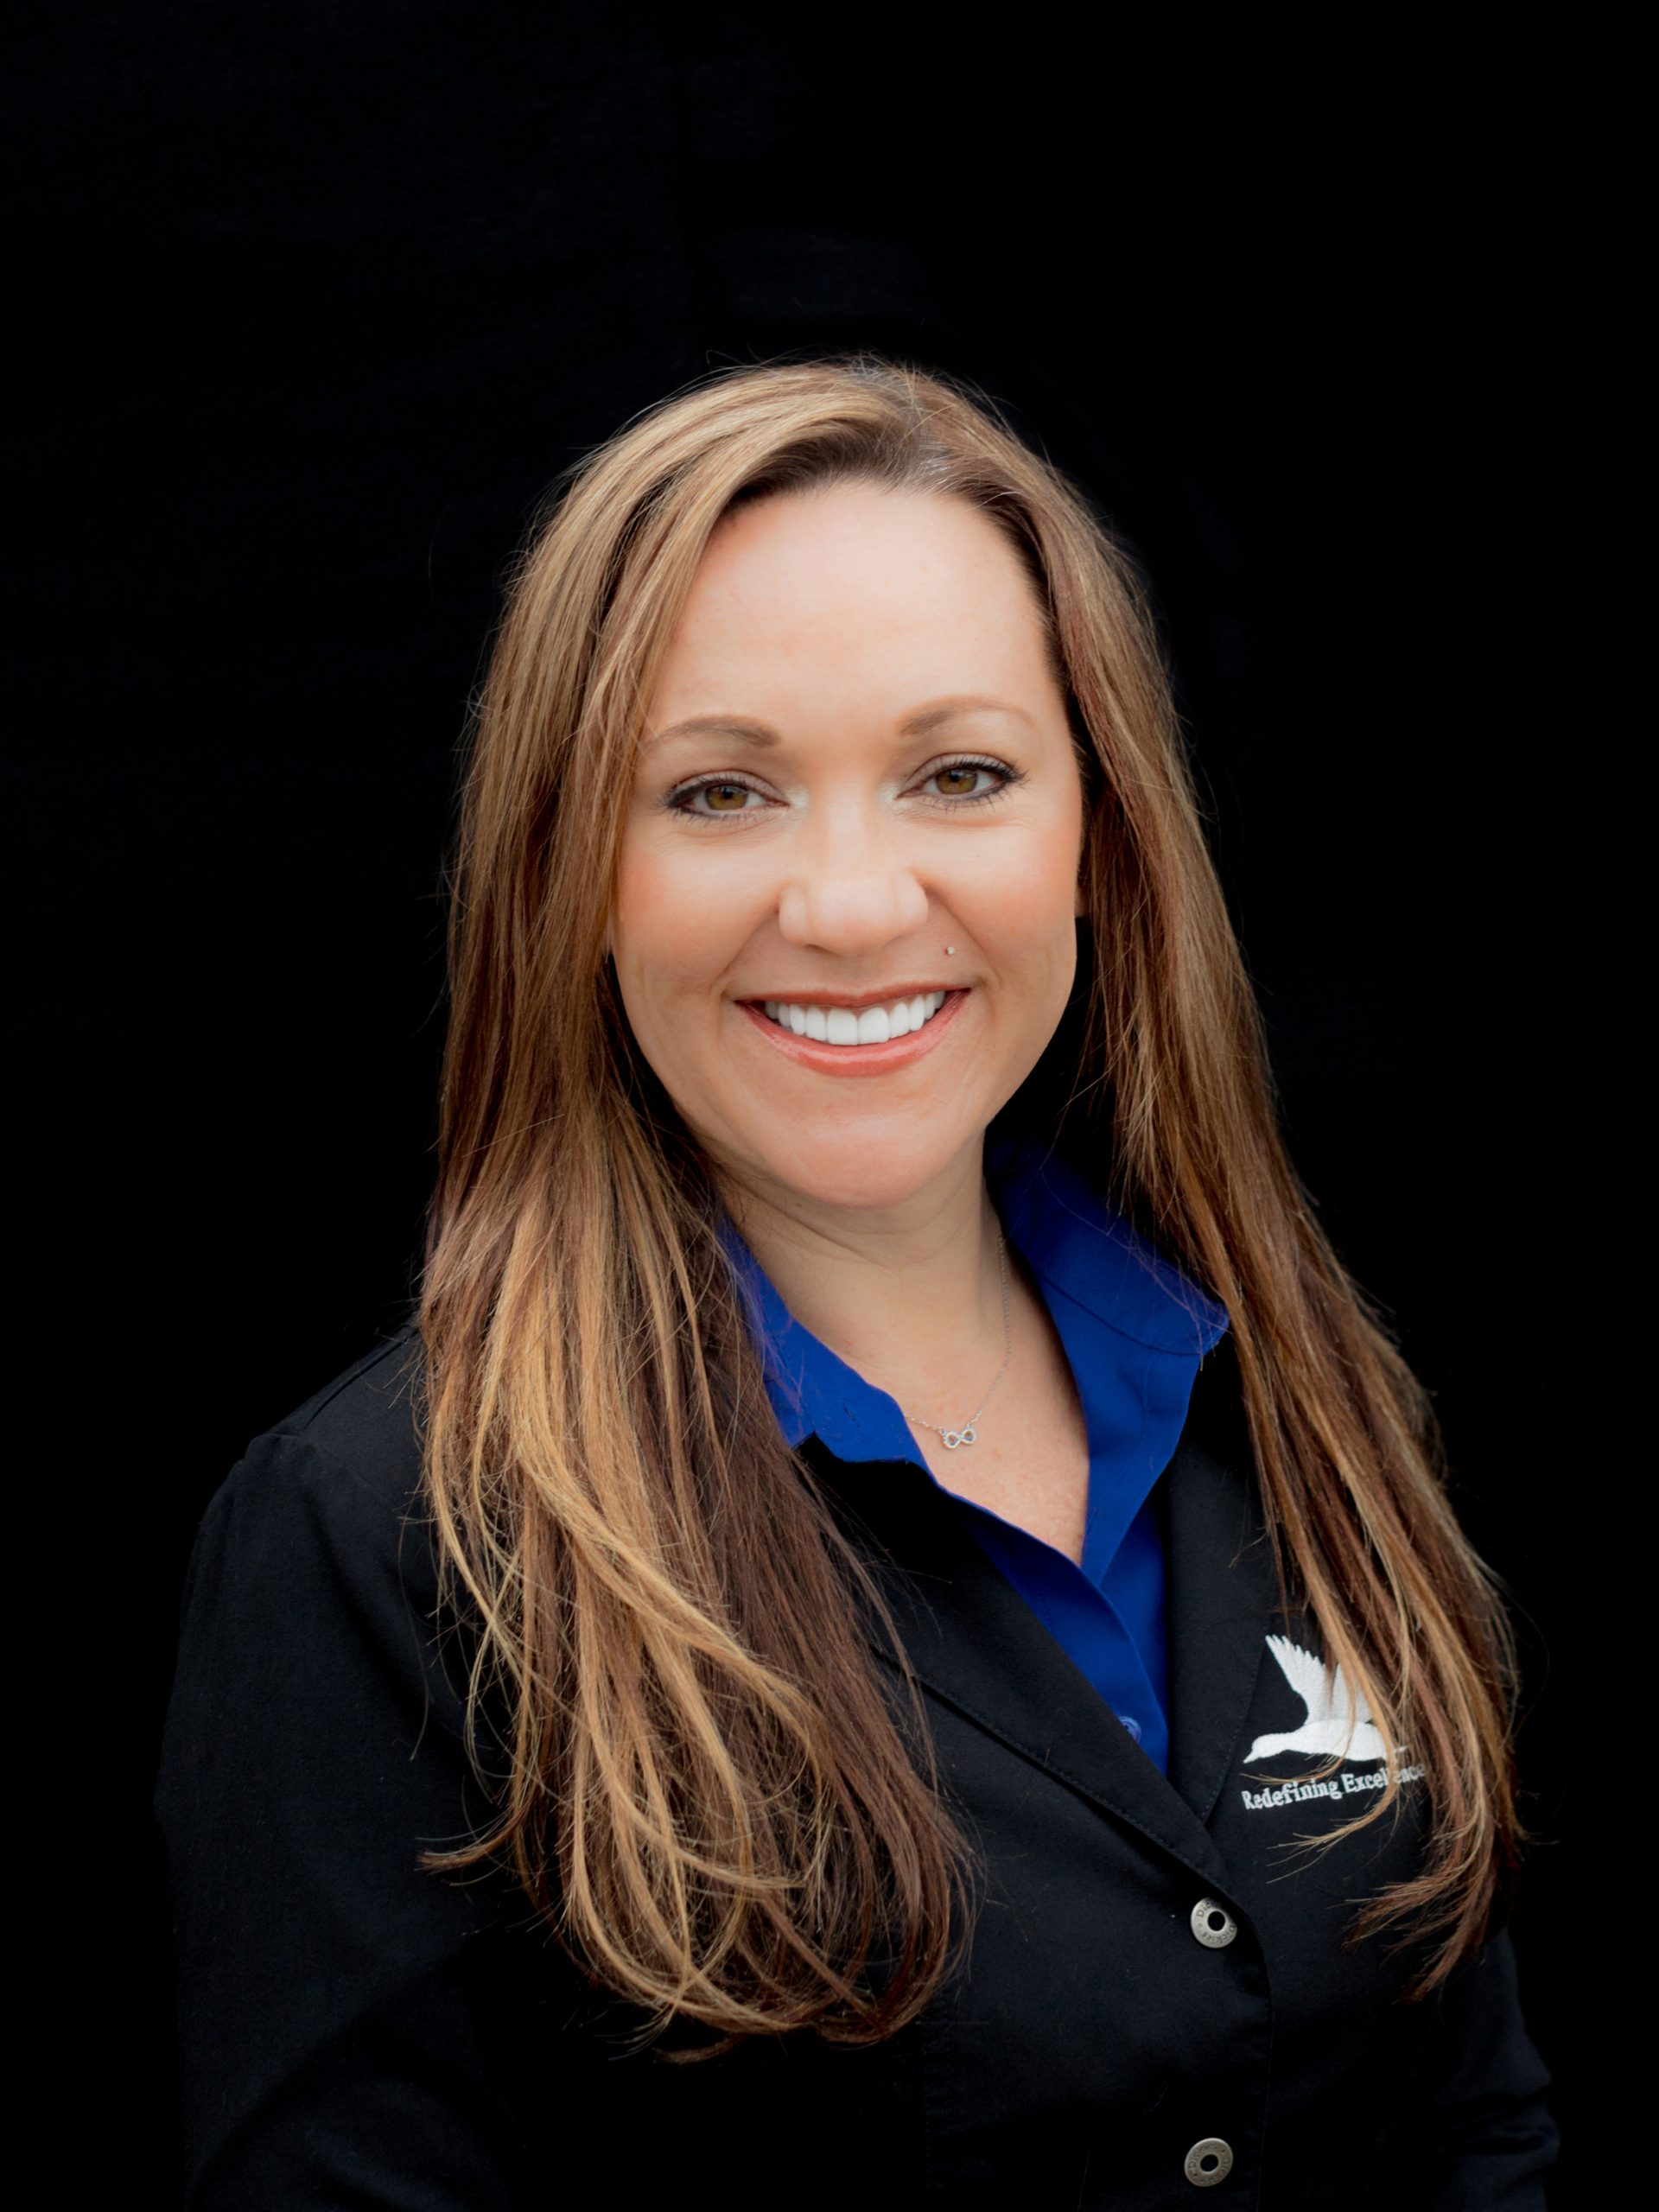 Rashele has been with the Artisan Dental Lab for over 21 years.